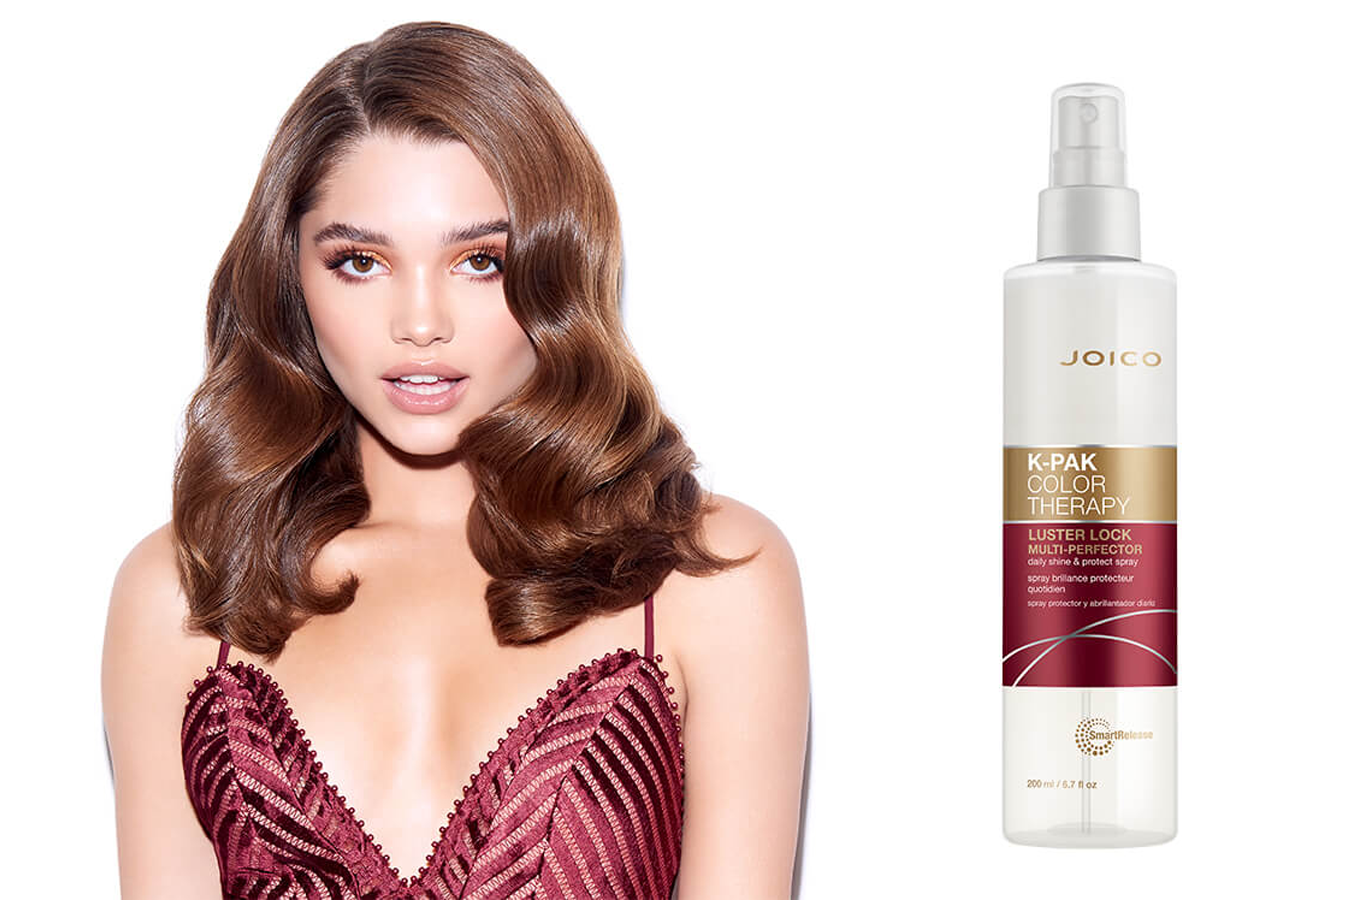 Joico K-Pak Color Therapy Luster Lock: